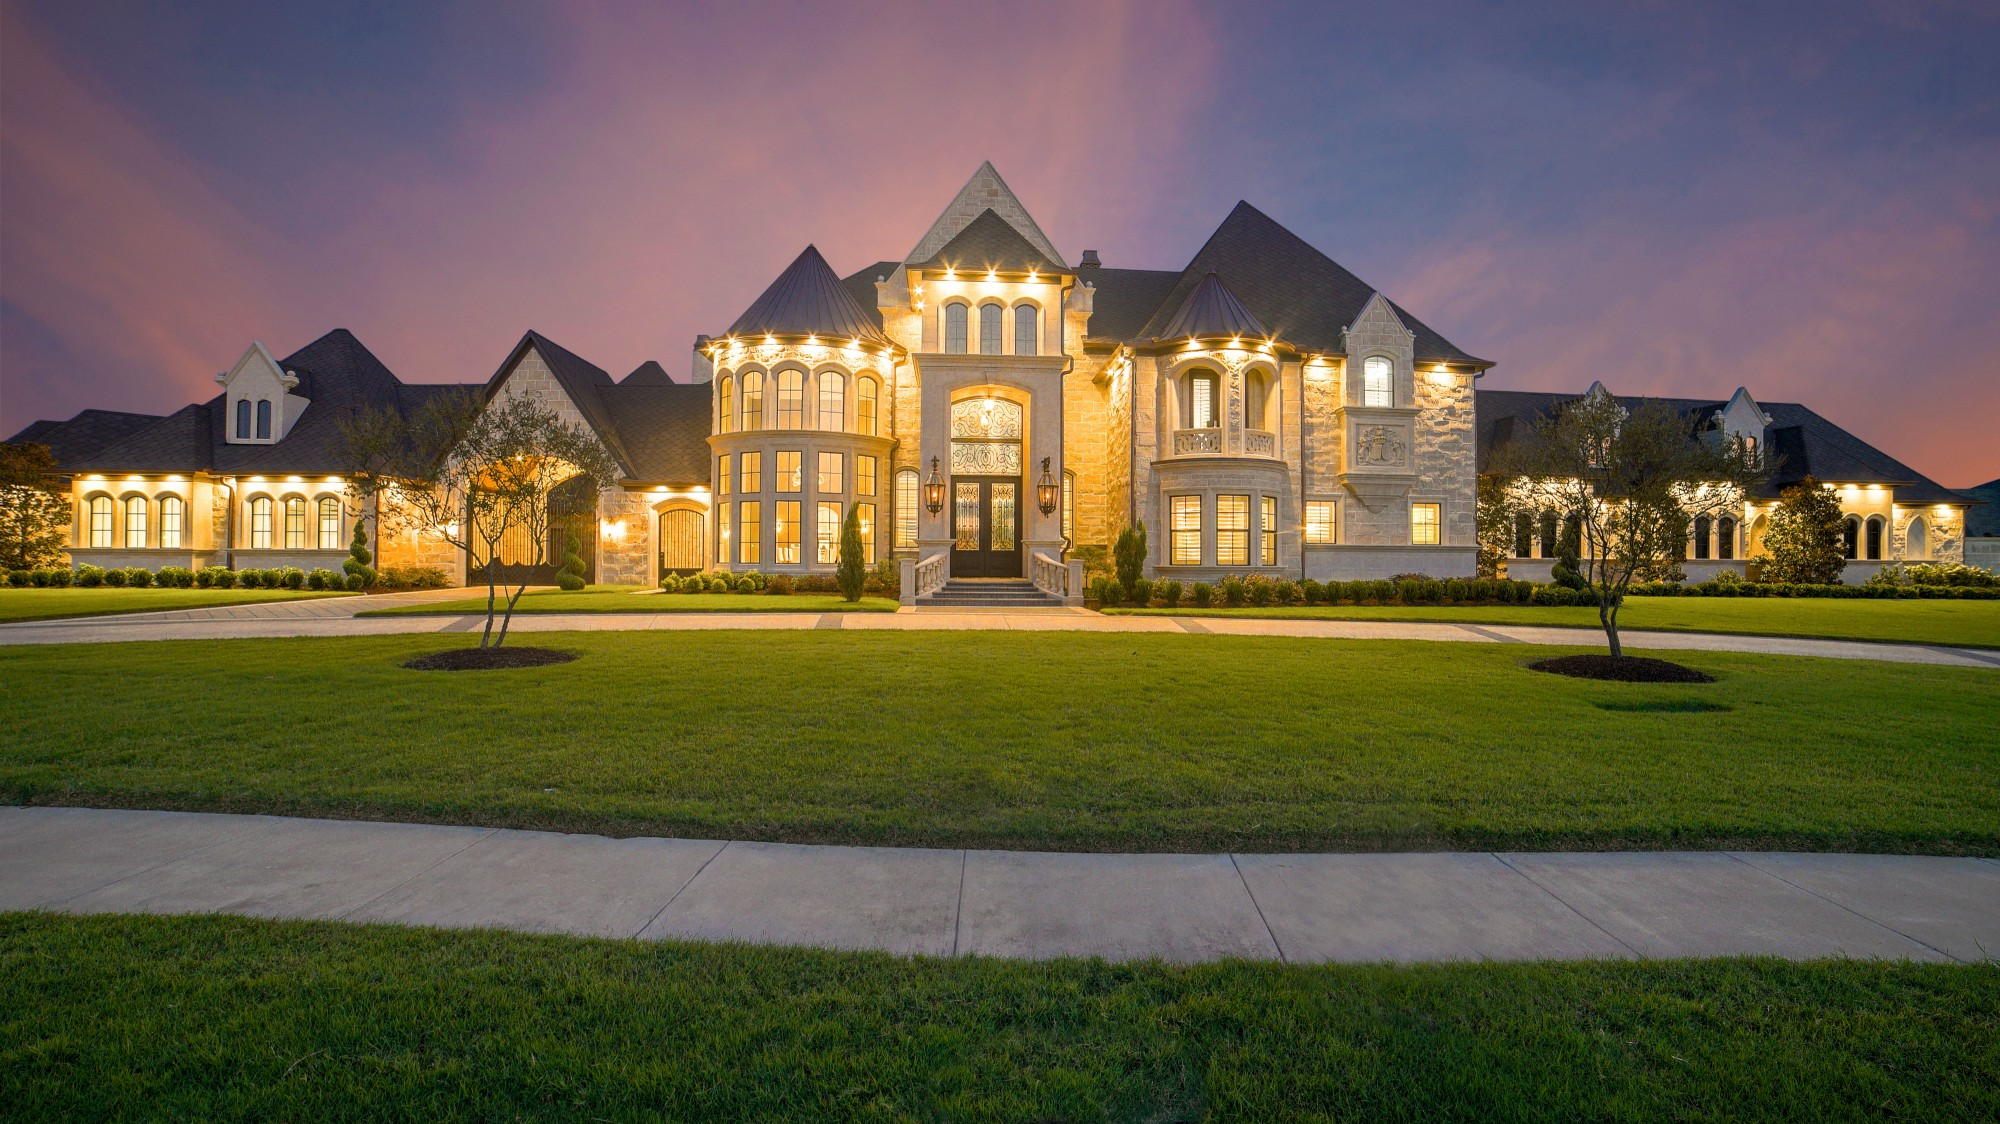 An obscenely large McMansion, faced with what appears to be rough fake stone, illuminated with all lights inside blazing yellow in the purple dusk. A wide swath of lawn extends from the circular drive to a sidewalk close to the camera.